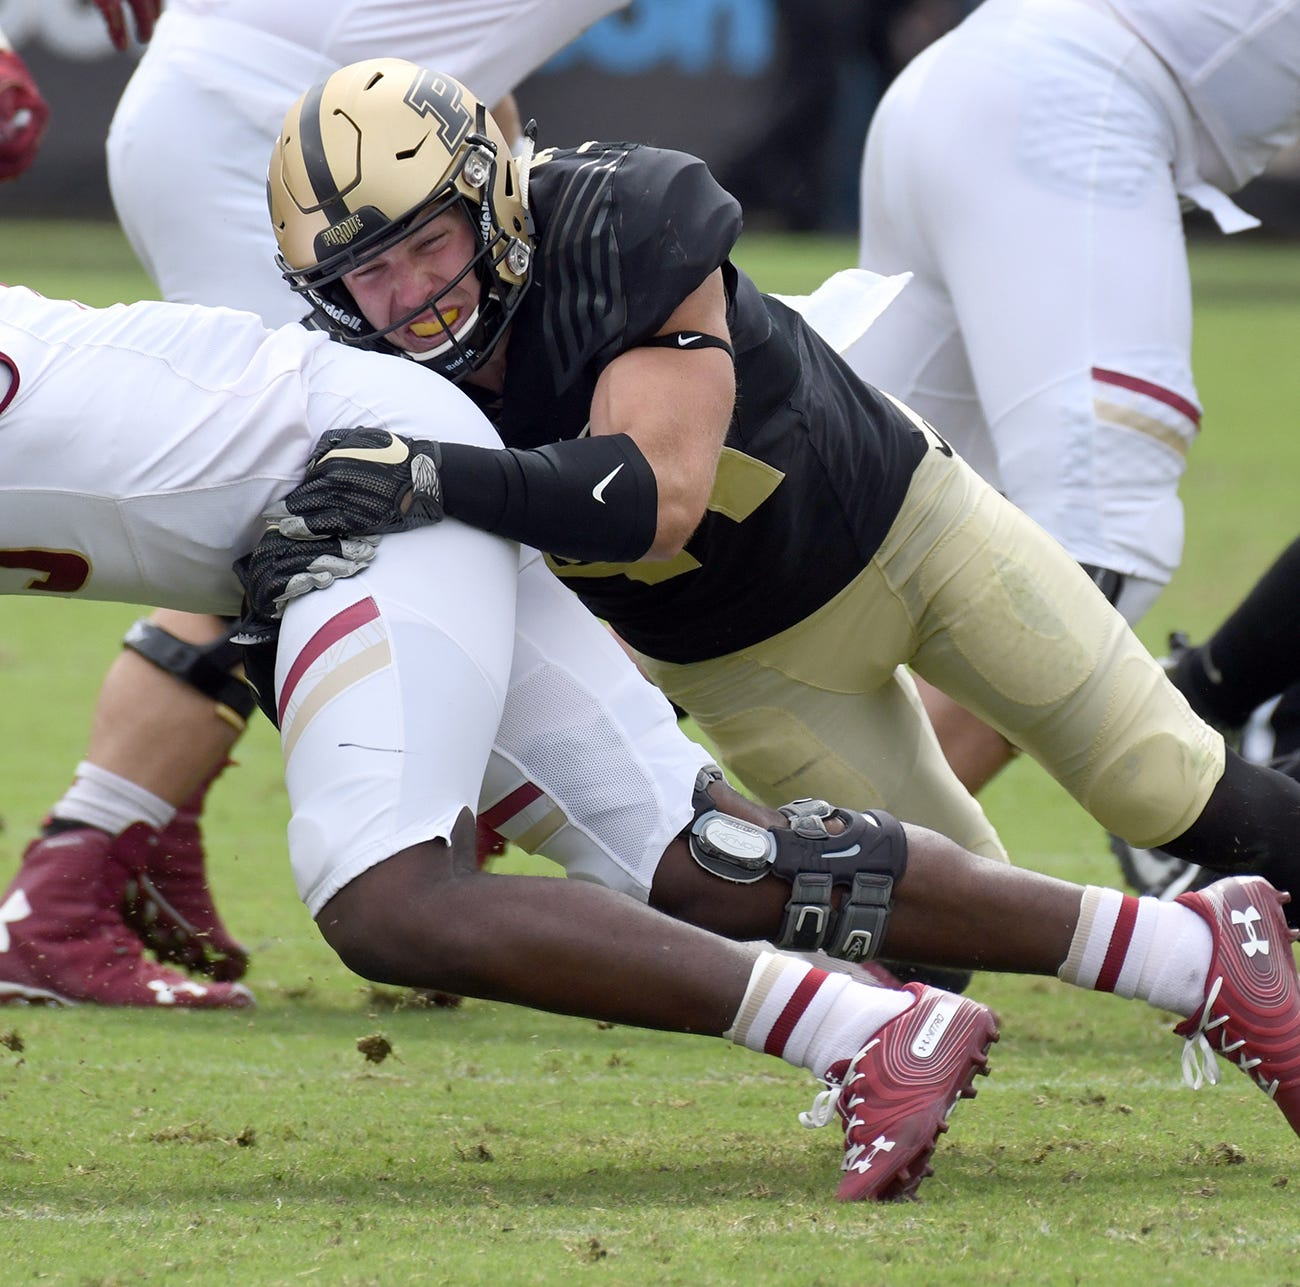 Purdue's maturing defense makes biggest stride toward the identity it covets